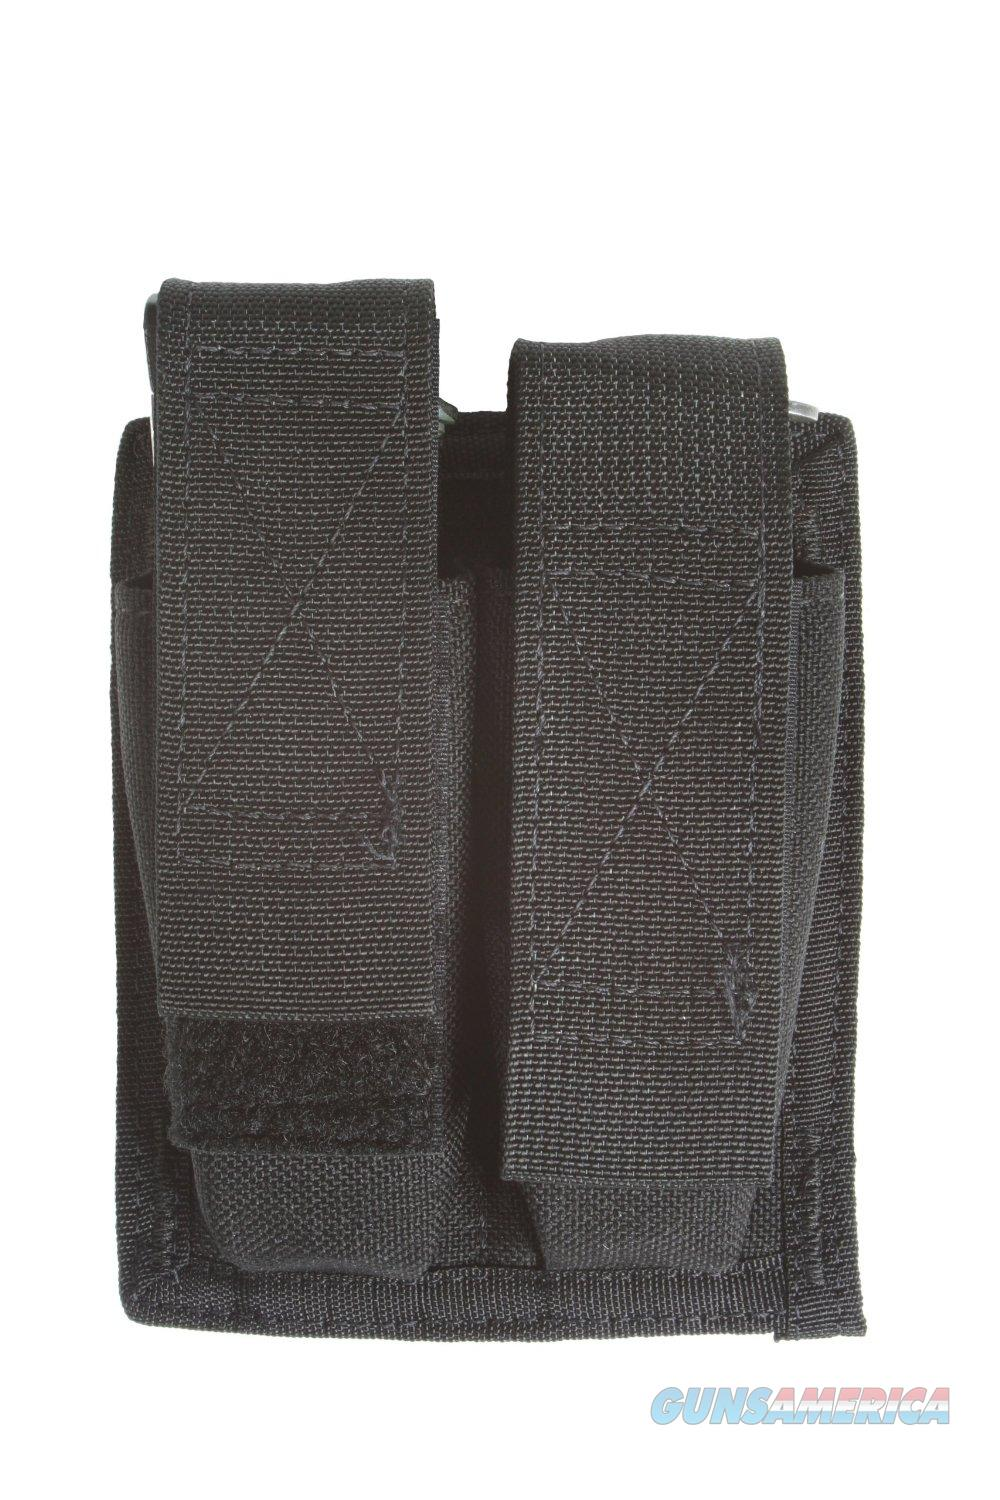 Three mag pouch  Non-Guns > Magazines & Clips > Pistol Magazines > 1911